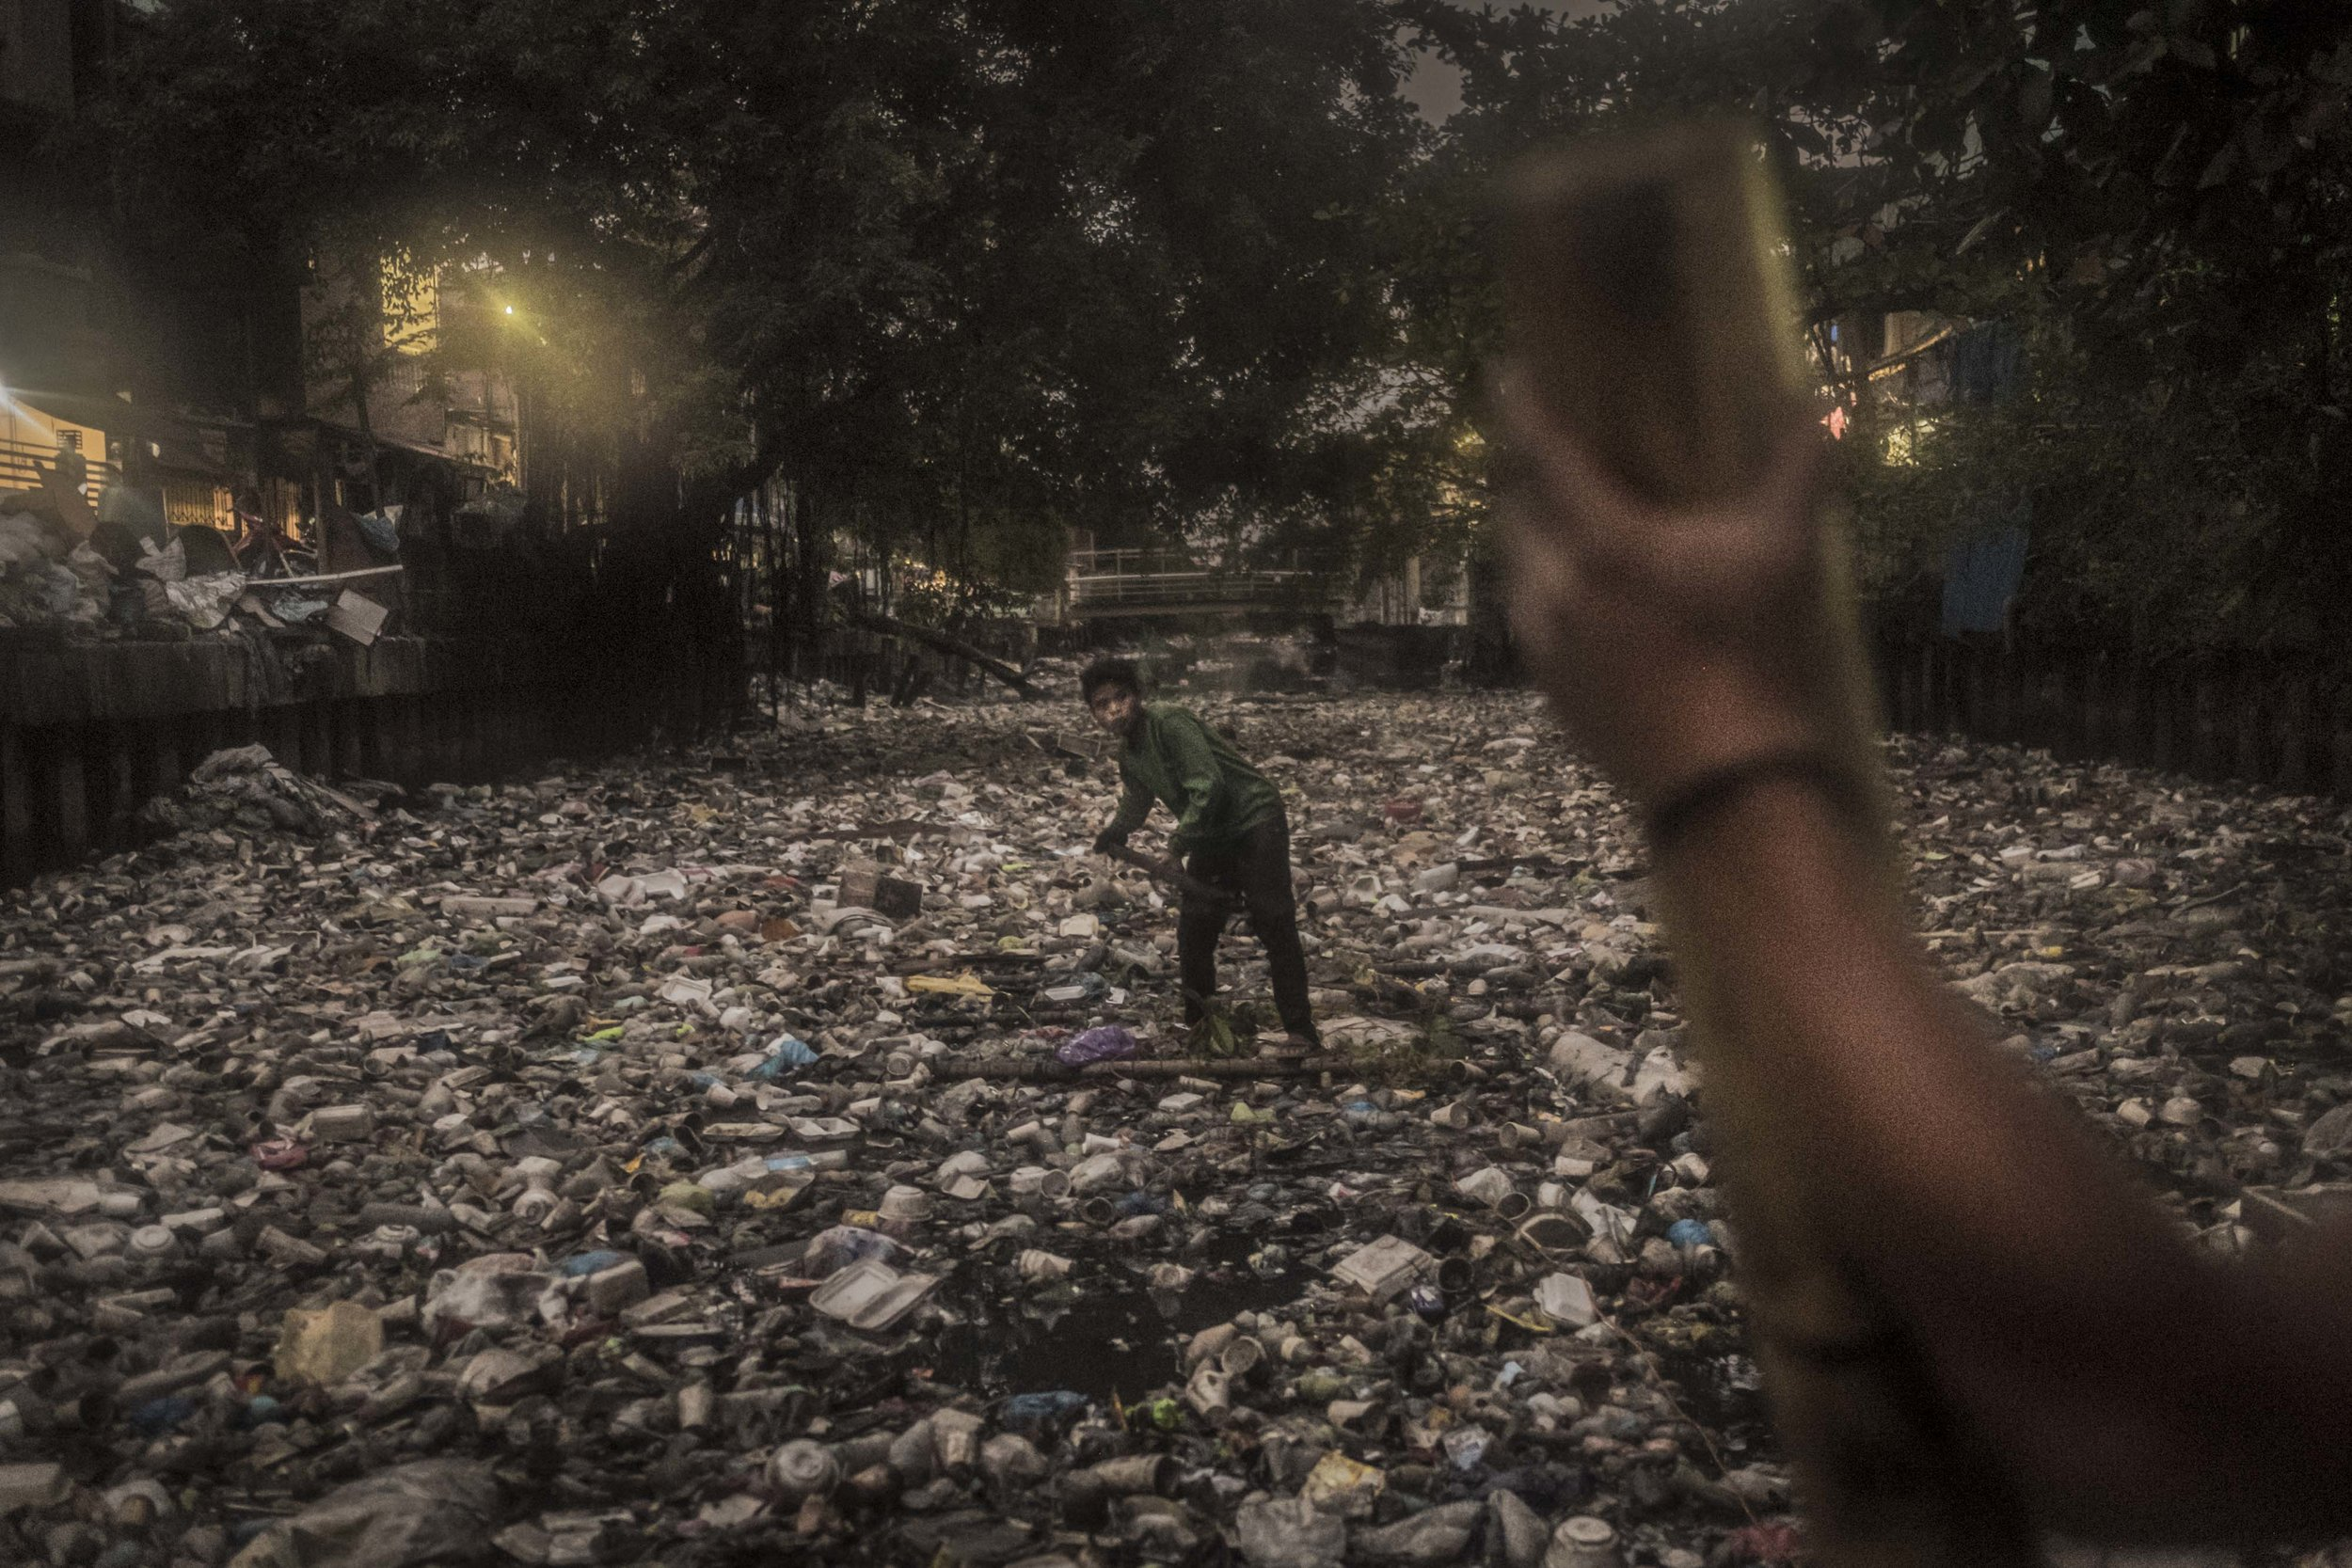 A PRRC river warrior cleaning up the Pasig River in Manila, Philippines